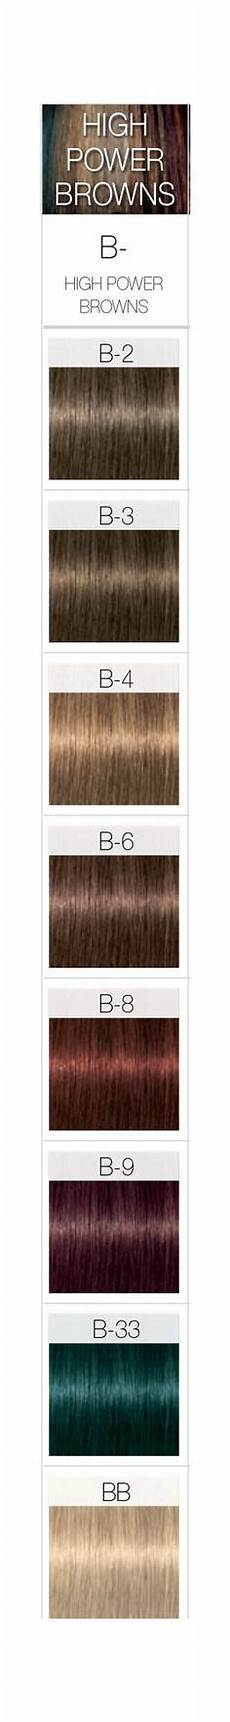 Igora High Power Browns Color Chart From Brassy Gold To Light Ash Champagne Highlights